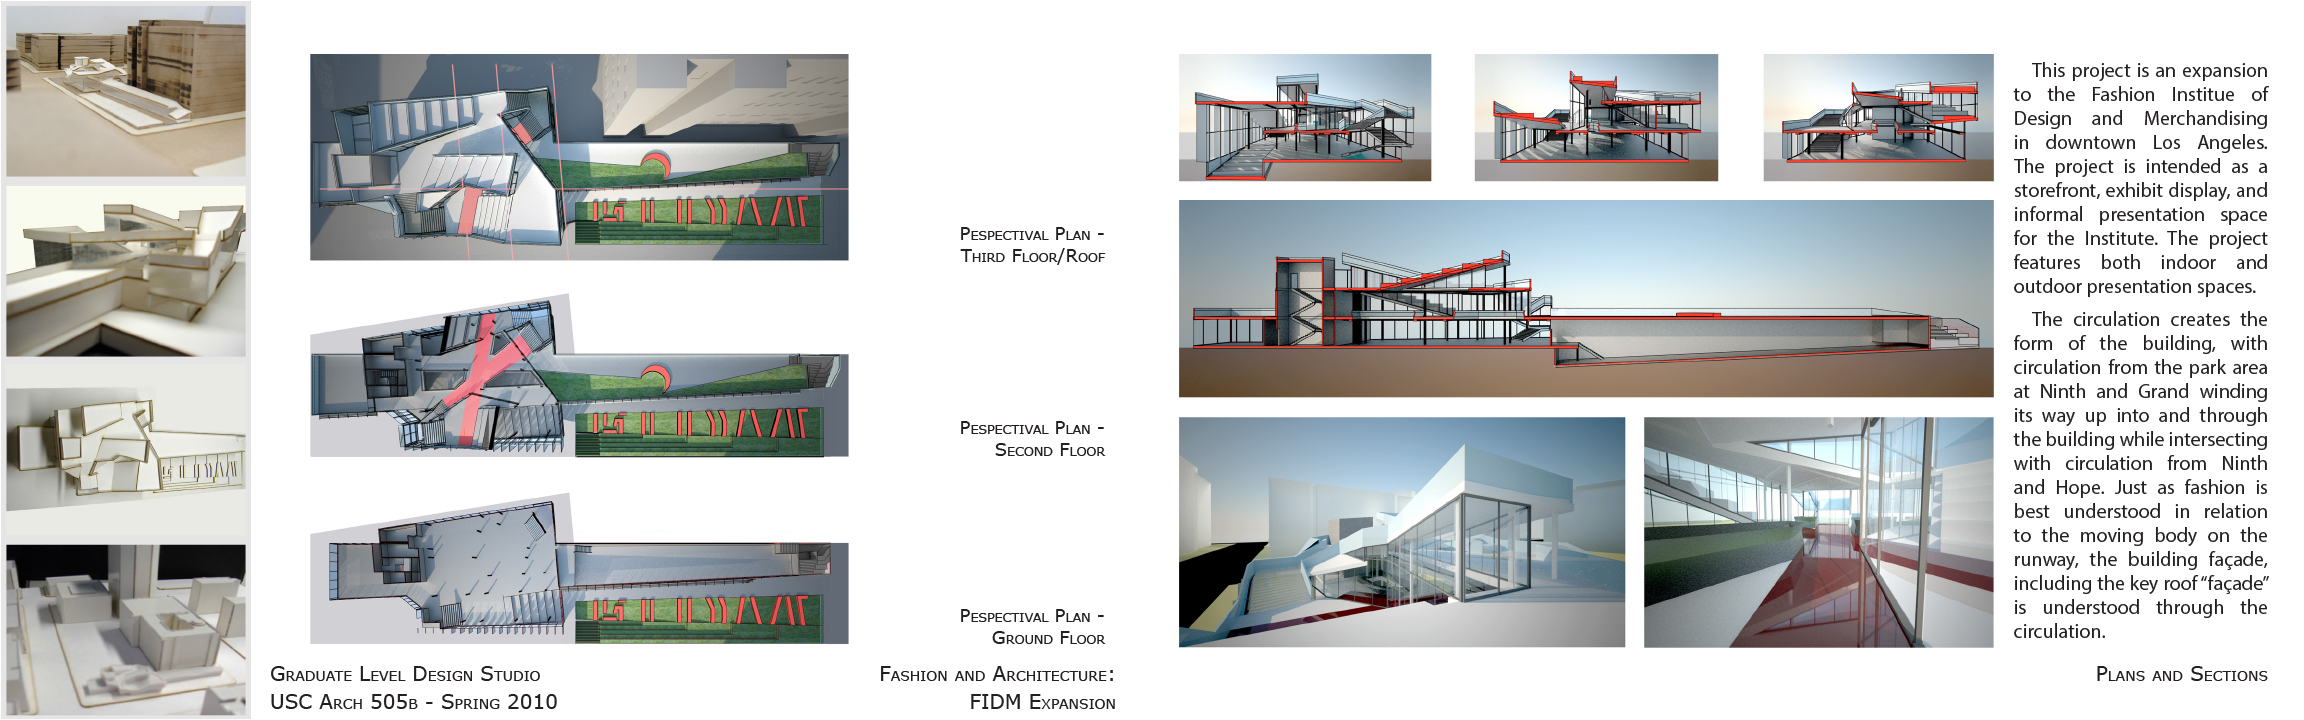 Fashion And Architecture Fidm Expansion Plans And Sections Rachel R Case